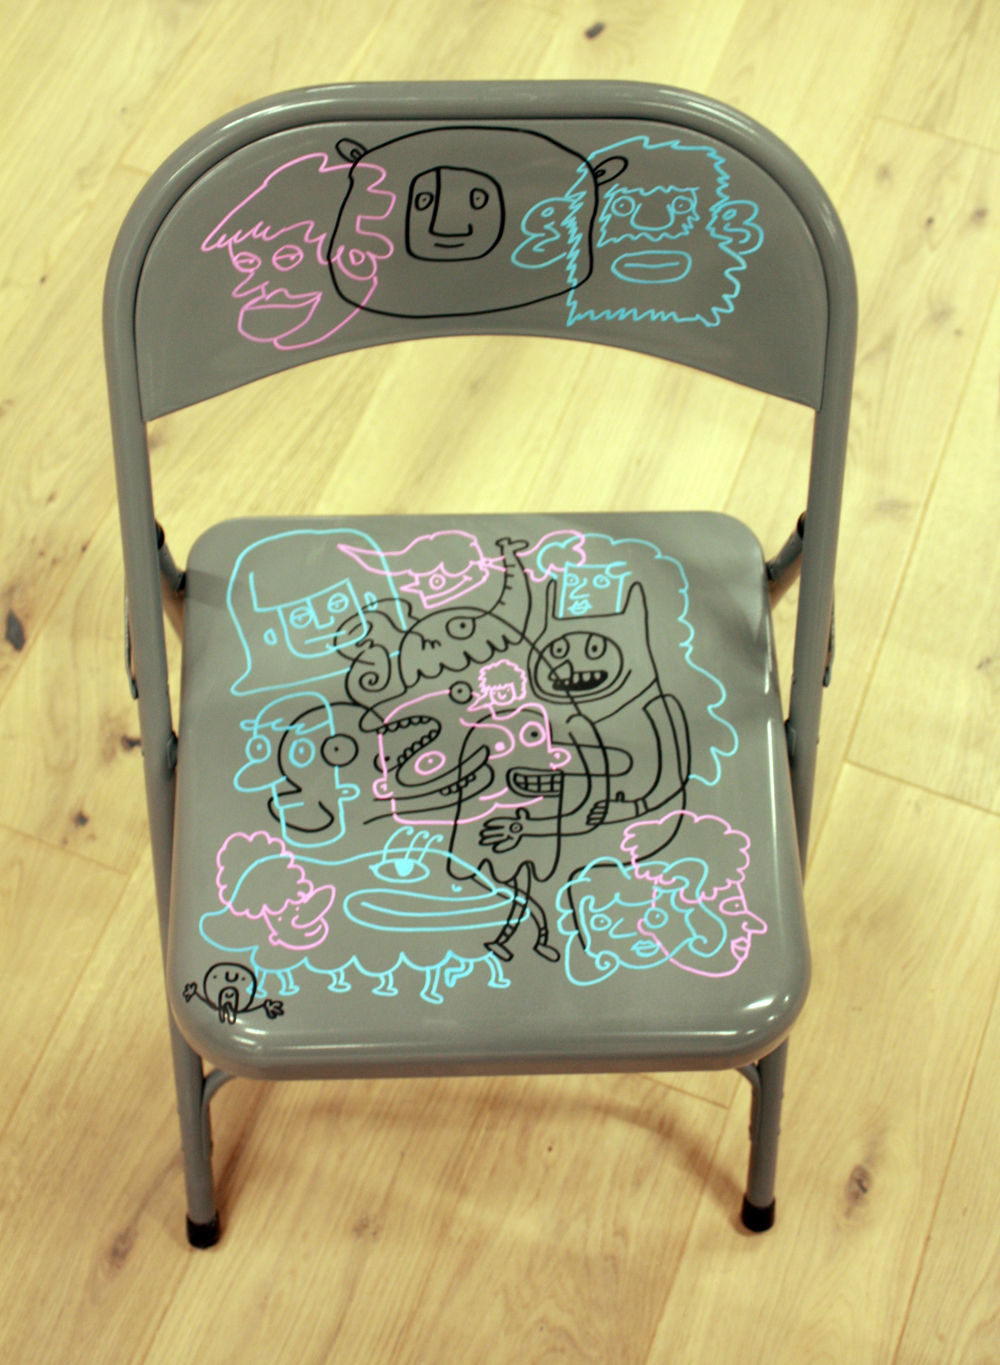 layered doodle, chairs, people